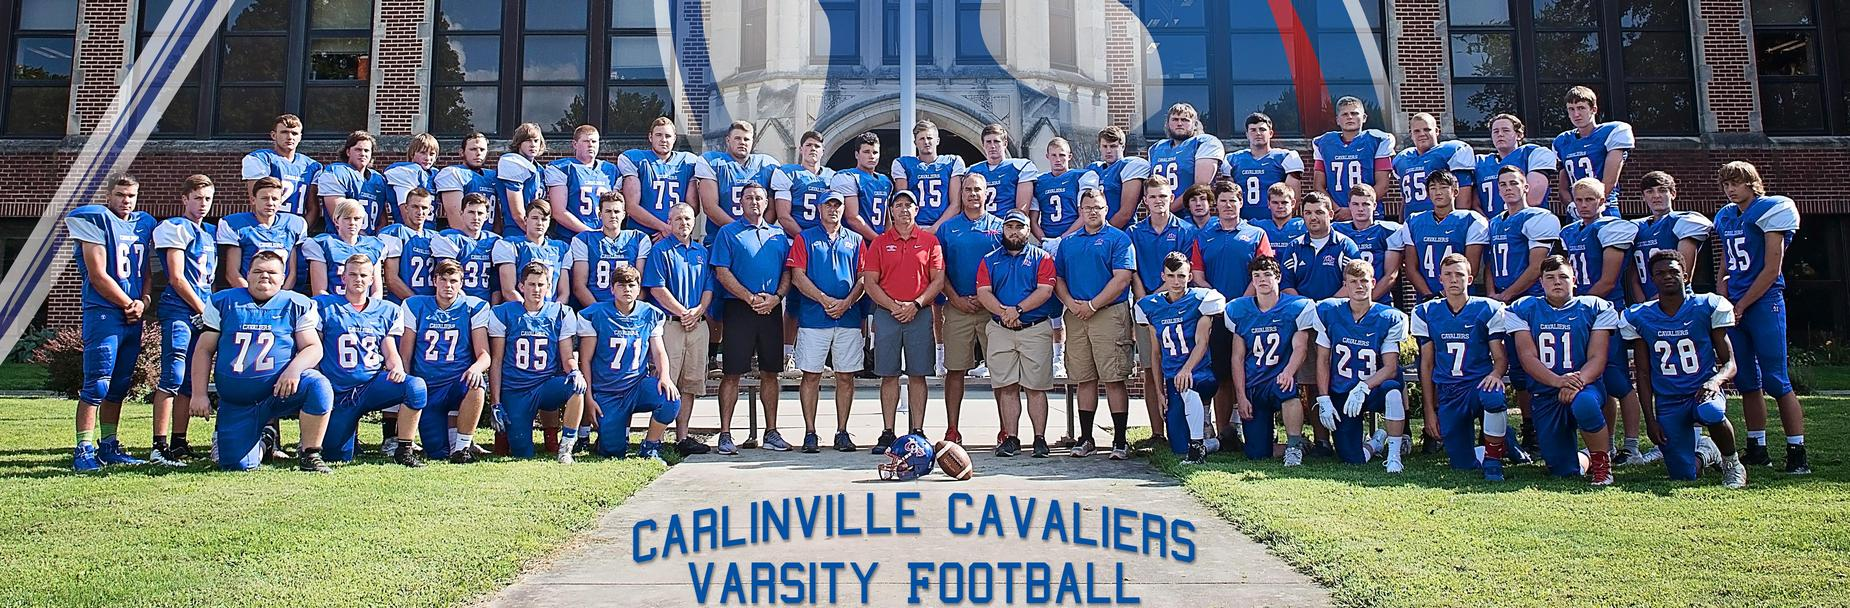 2019-2020 Carlinville High School Varsity Football Team